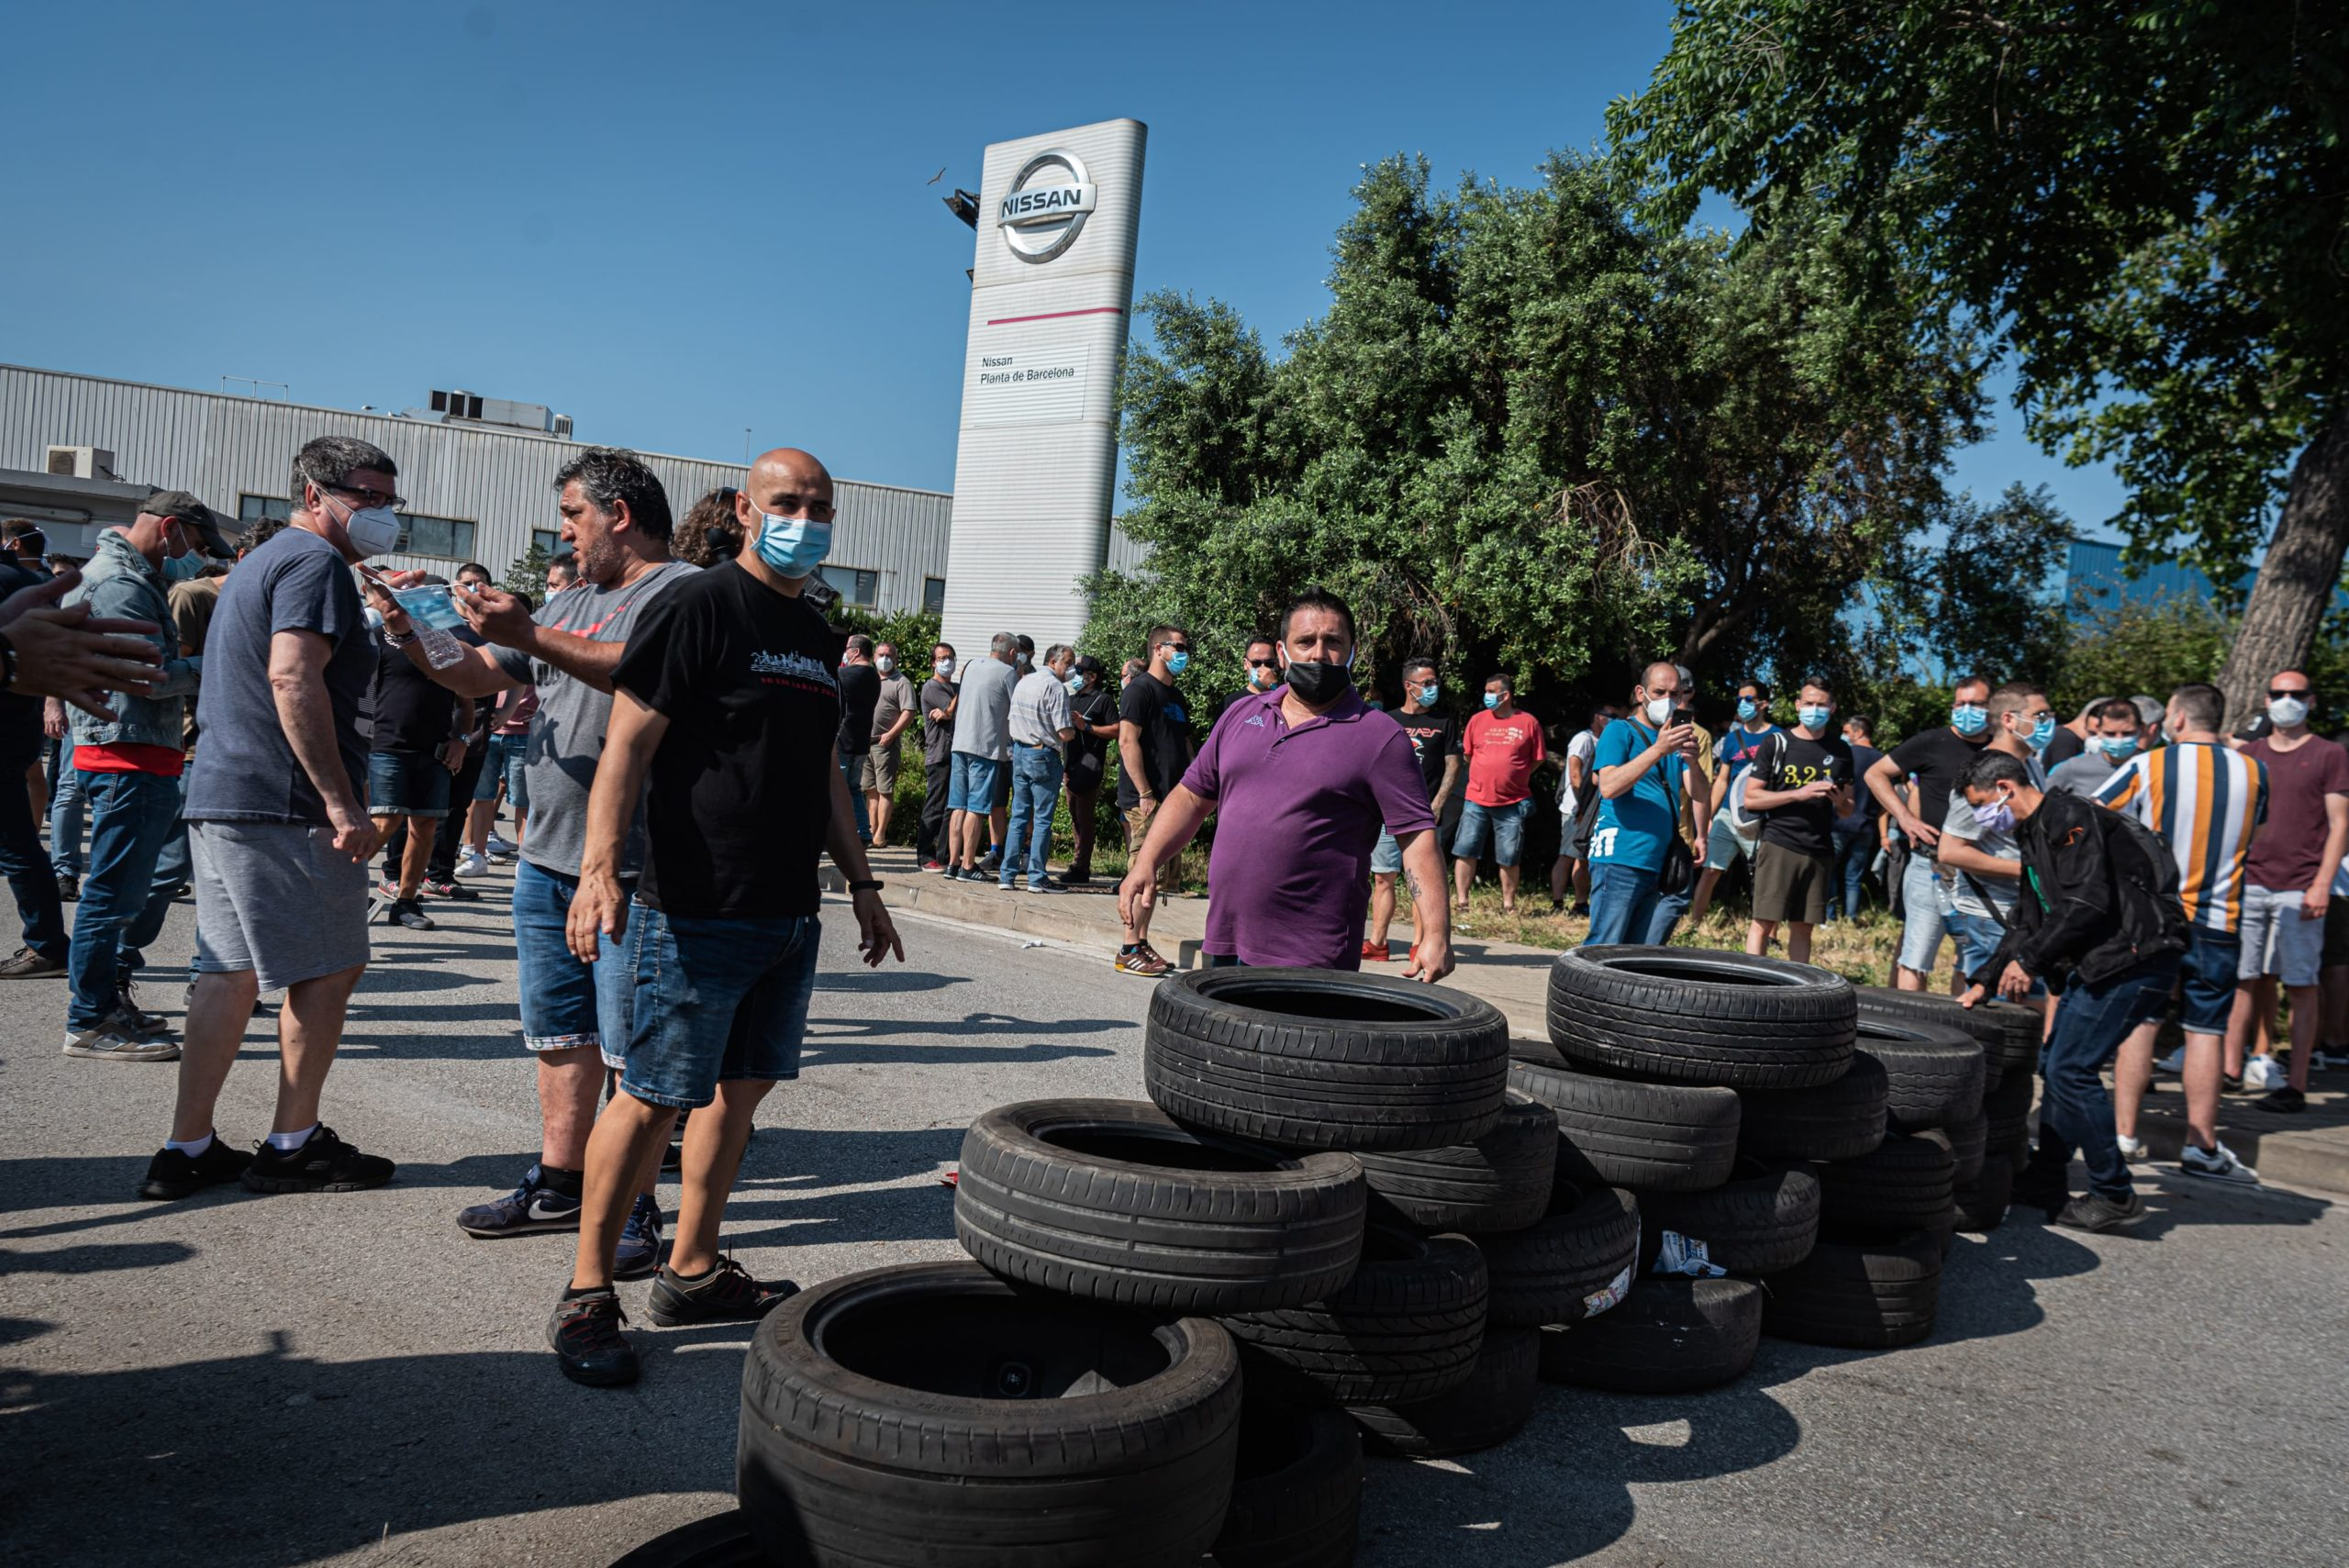 press,photo,photojournalism,photography,crisis,spain,catalonia,nissan,industry,economy,car,unemployment